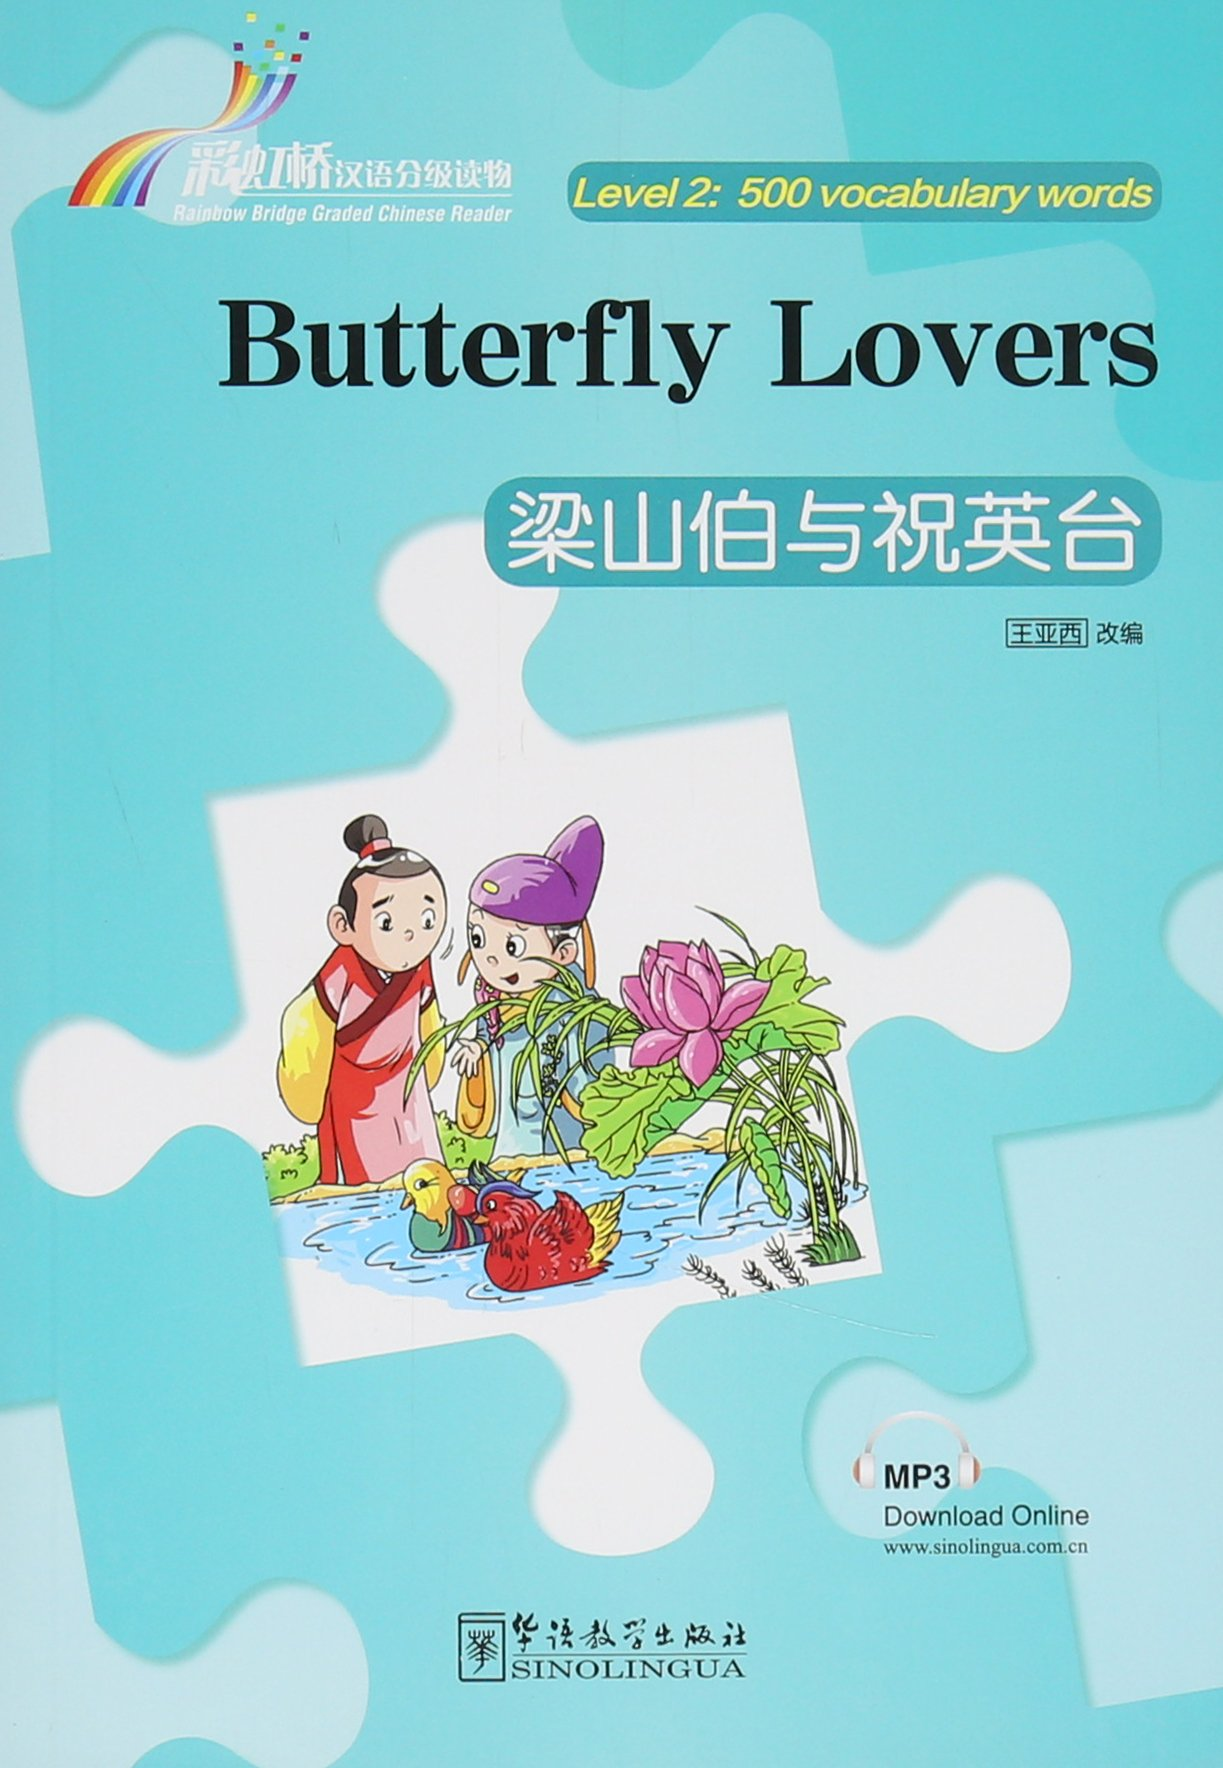 Butterfly Lovers - Rainbow Bridge Graded Chinese Reader, Level 2: 500 Vocabulary Words